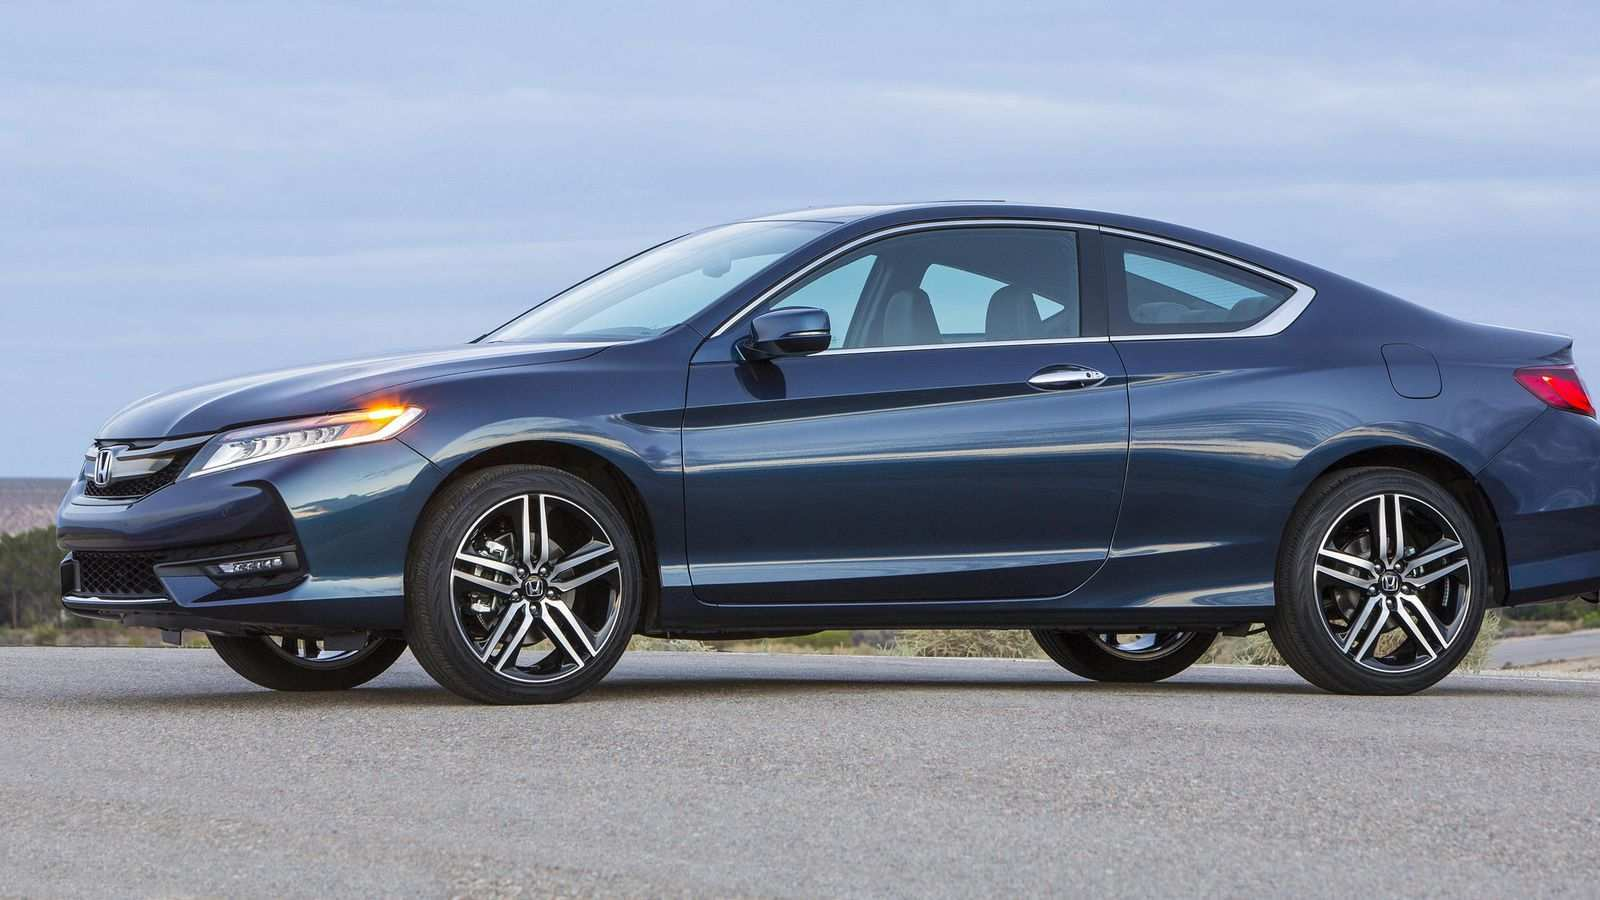 53 The 2019 Honda Accord Coupe Engine